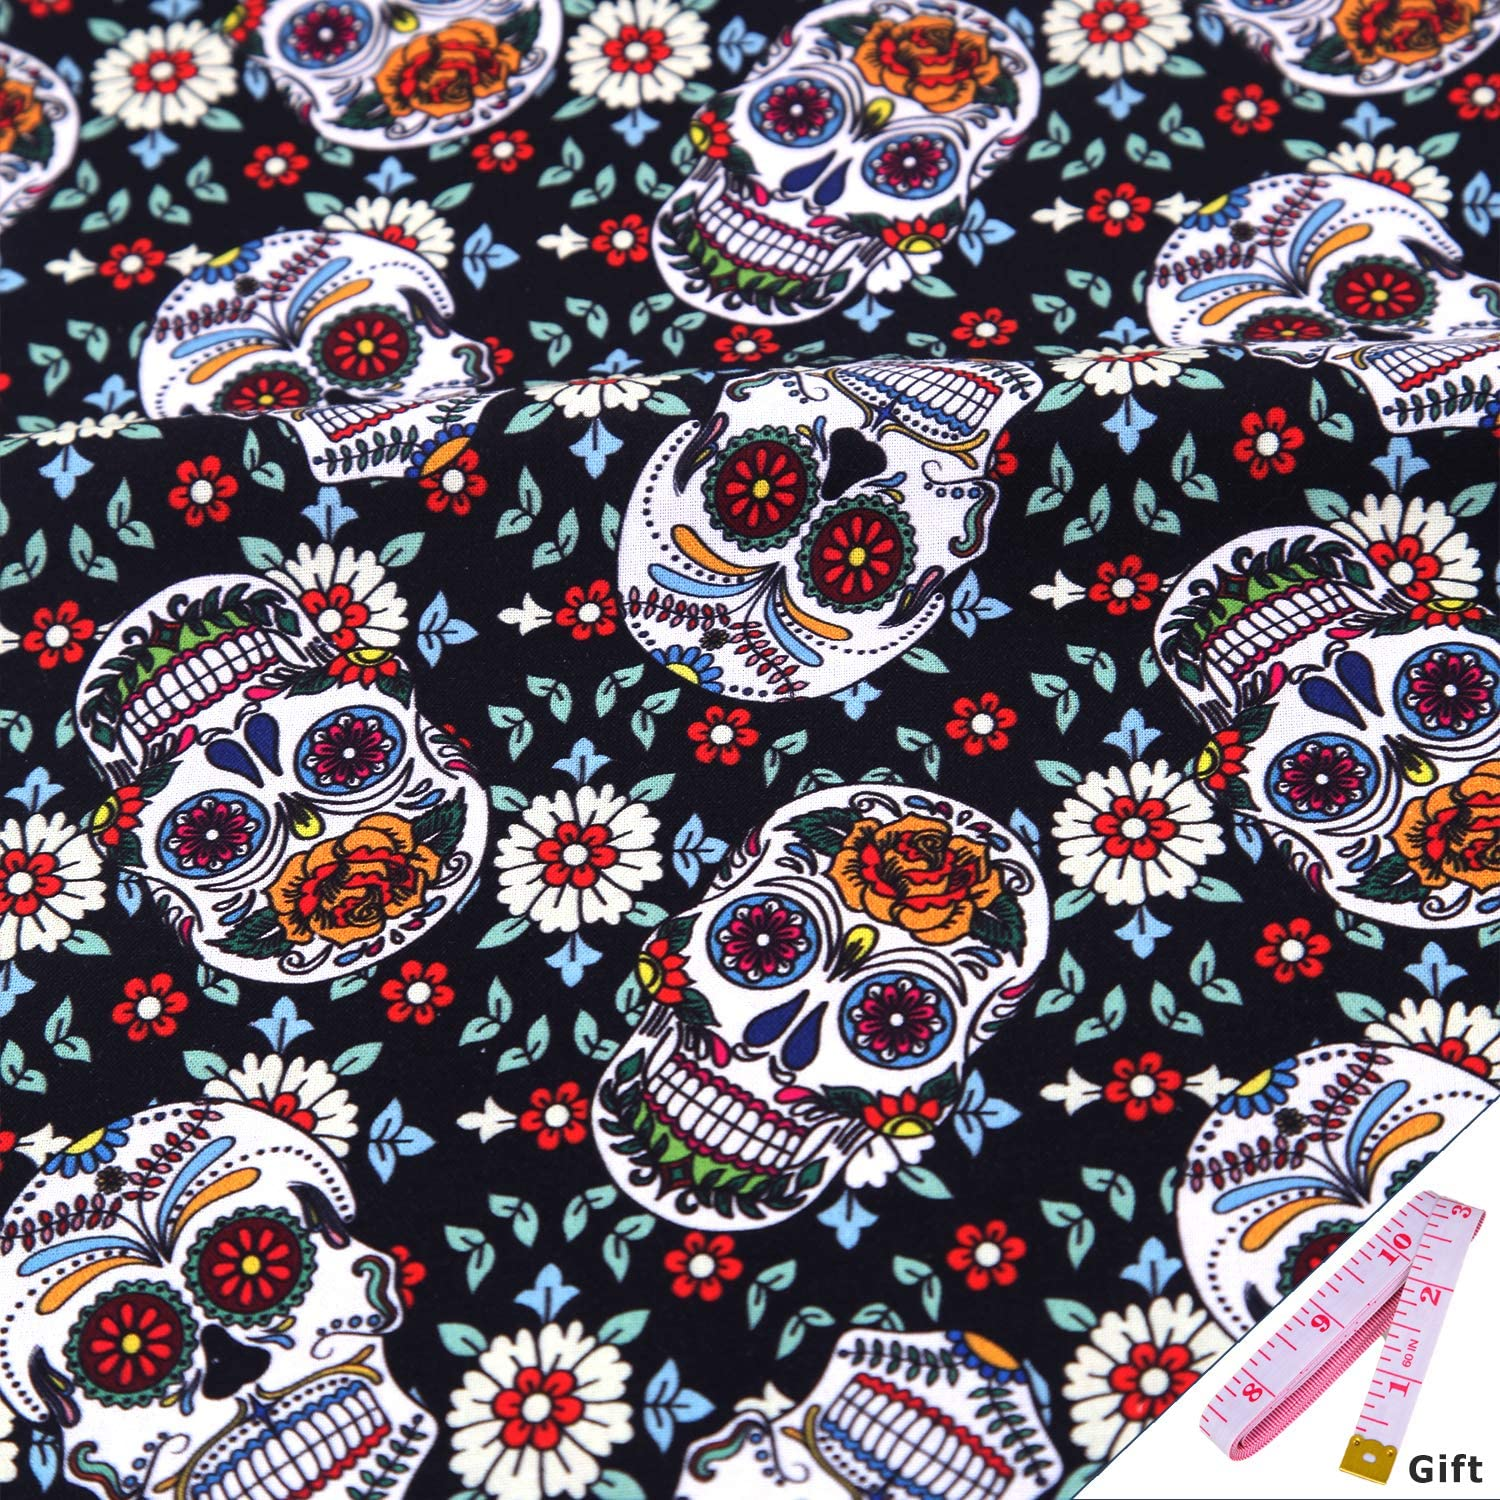 Halloween Skull Pattern Cotton Fabric by The Yard - 100% Cotton Fabric 90cmx100cm for Sewing Quilting Crafting (Black White)